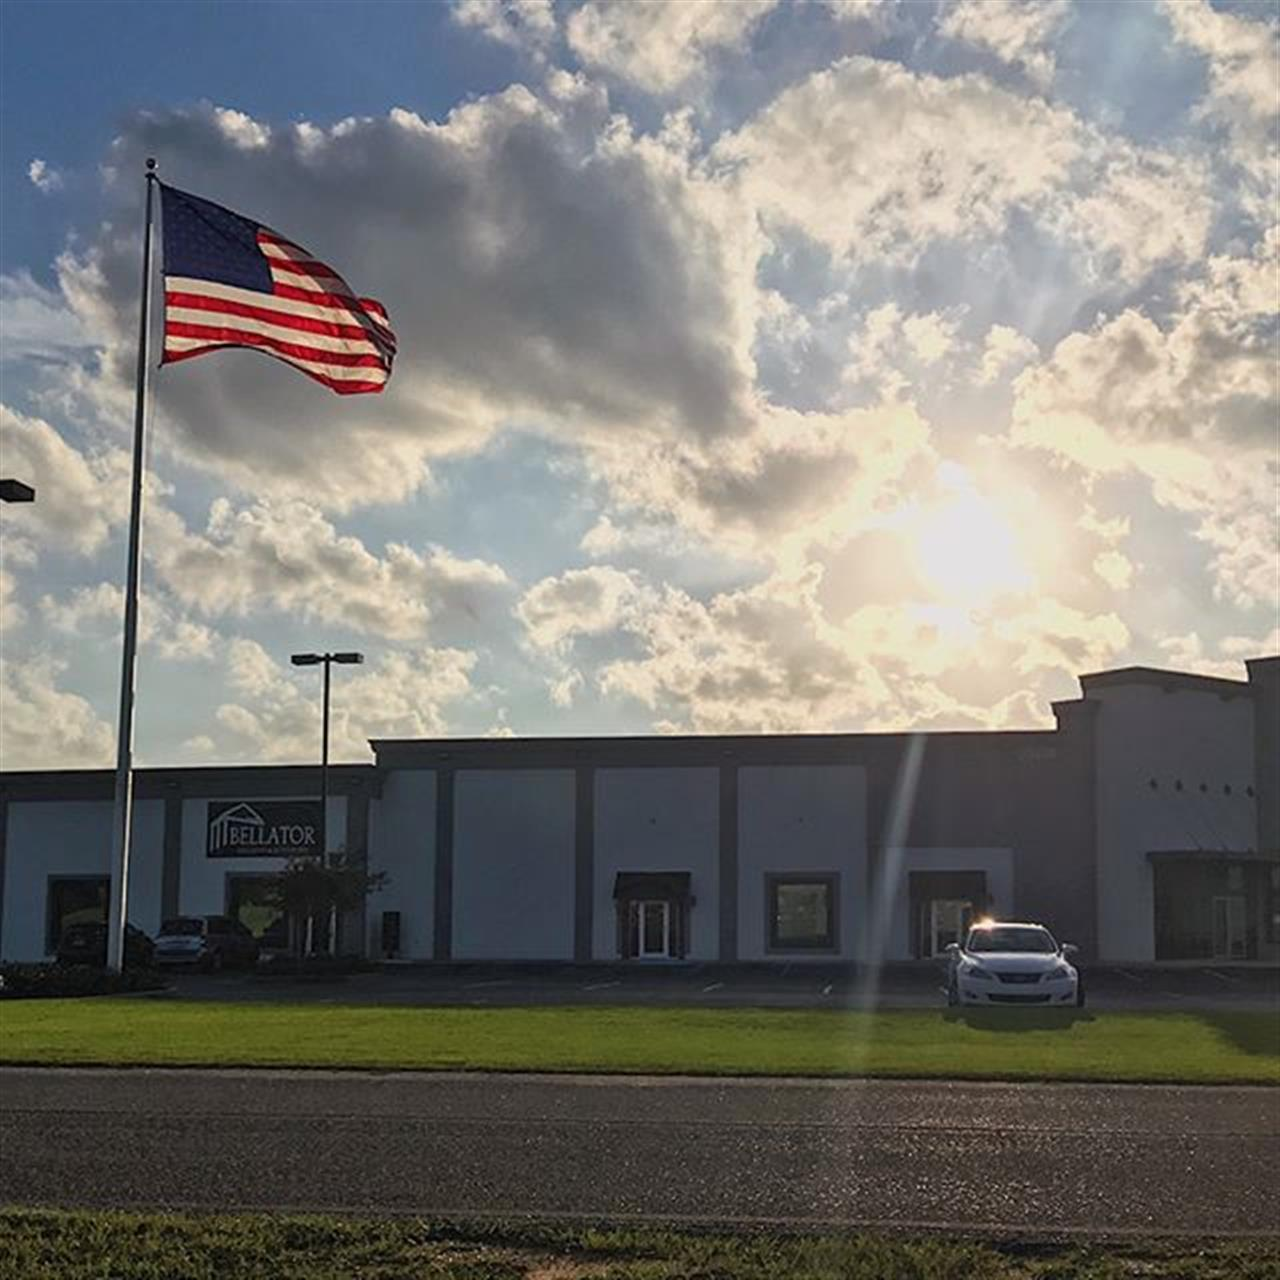 Soft, sunny skies over the @bellatorrealestate home office tonight. It's always humbling to step out of the office and see this incredible flag in the evening sunlight.  #alabamarealestate #gulfcoast #sunsets #veteranowned #americathebeautiful?? #leadingrelocal